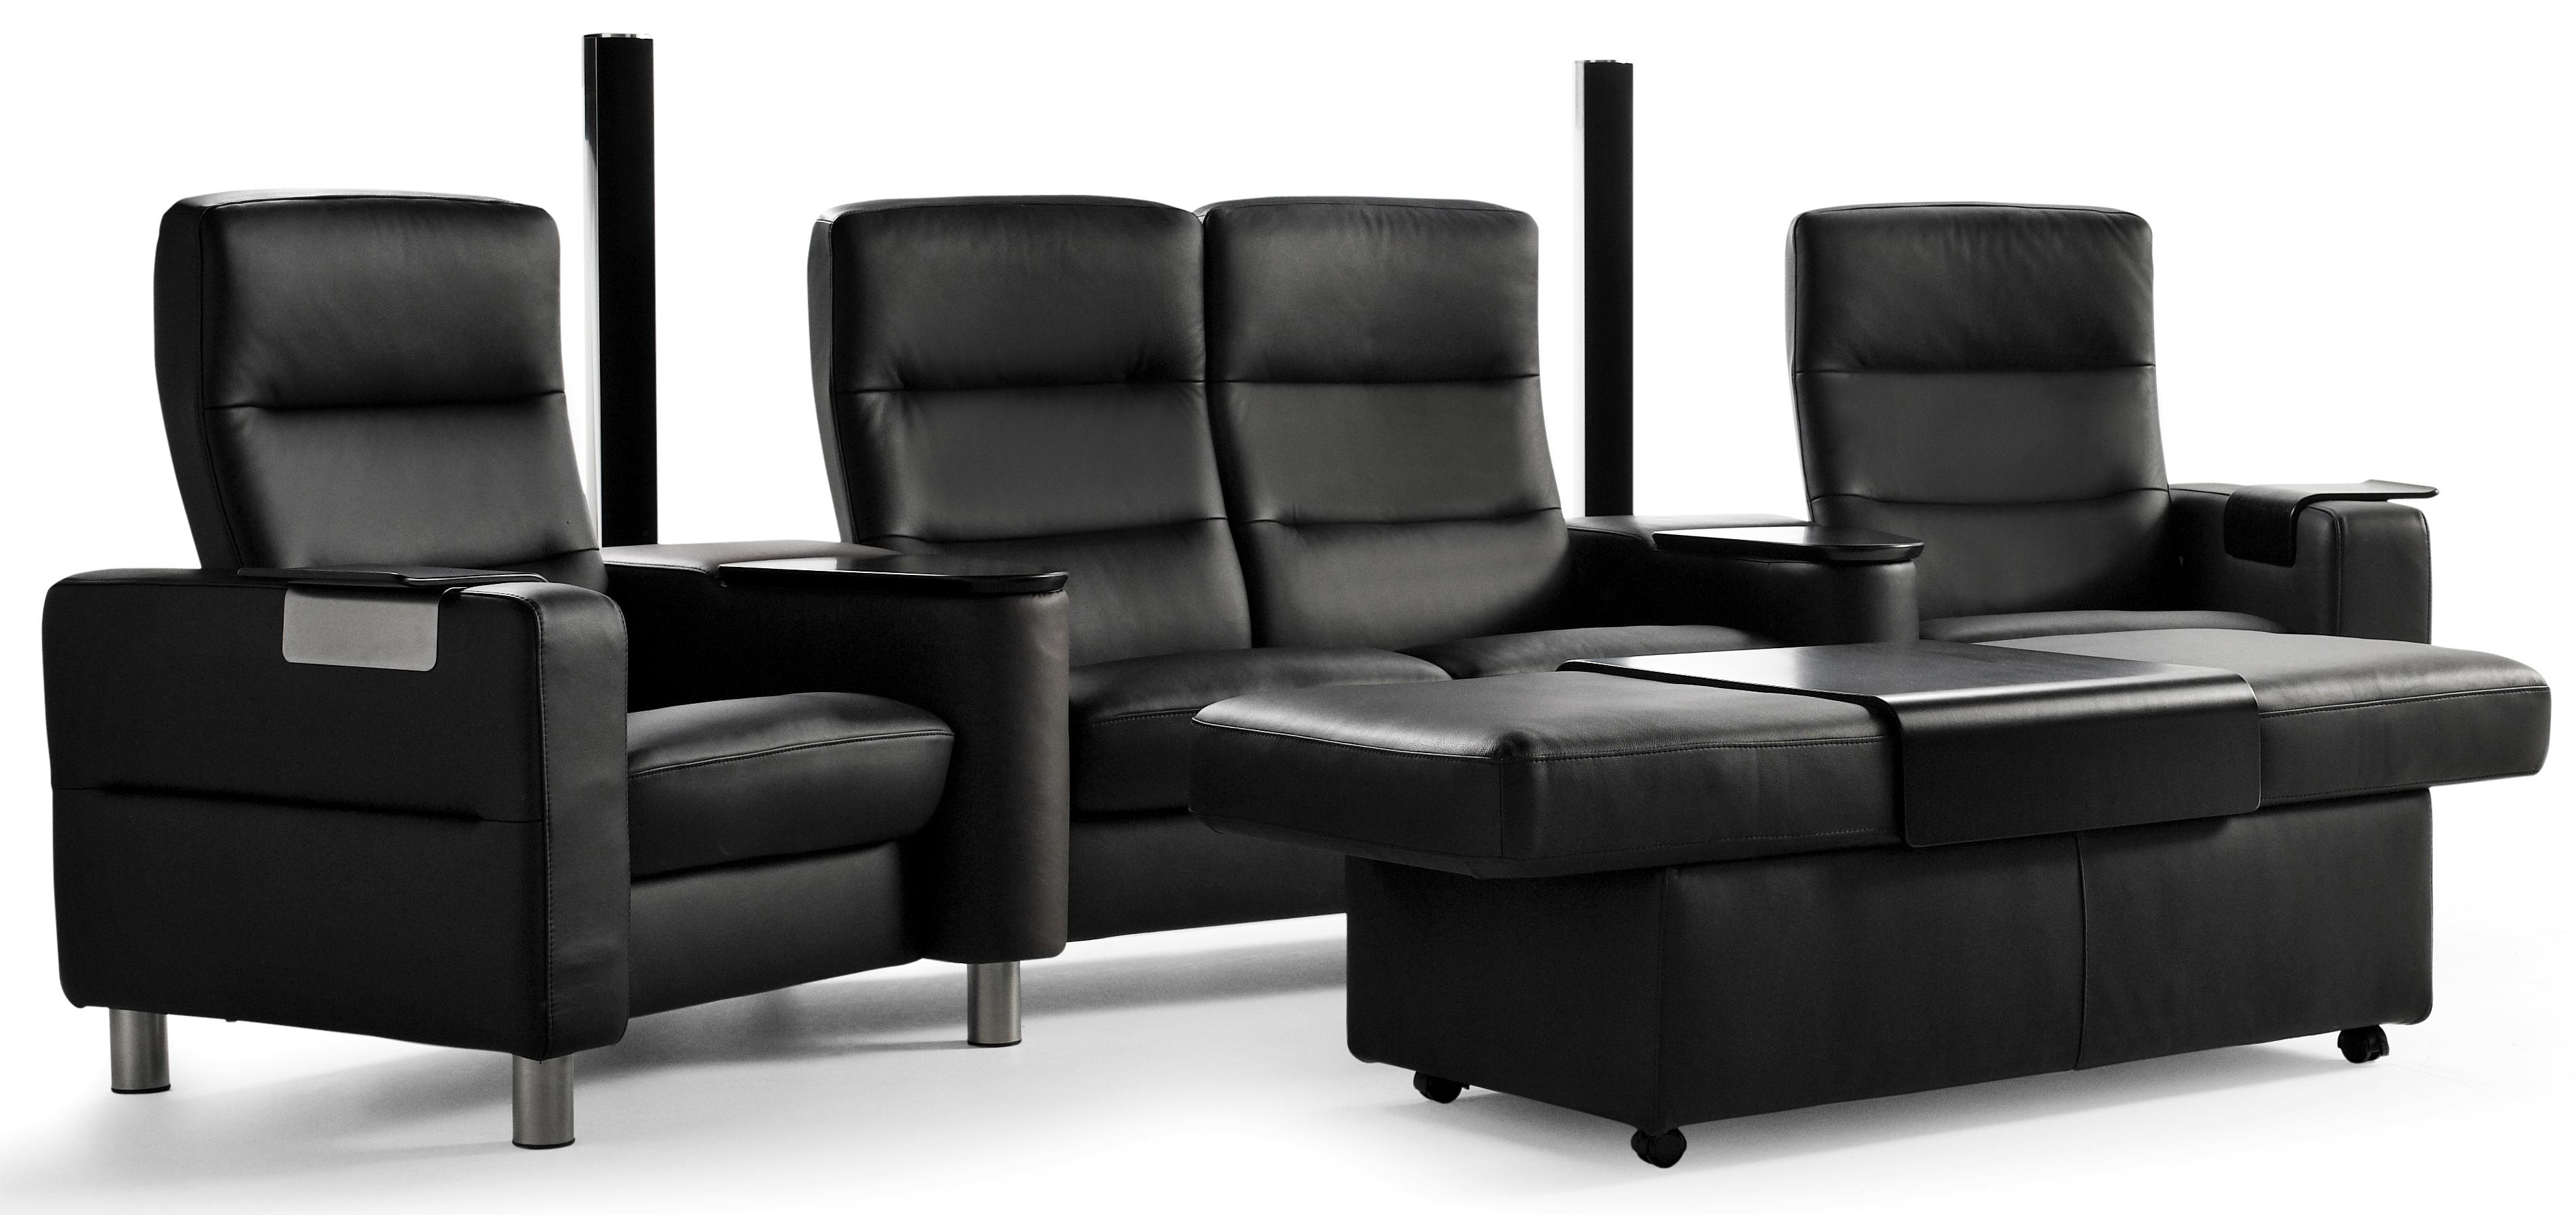 Wave Theater Seating by Stressless at Virginia Furniture Market